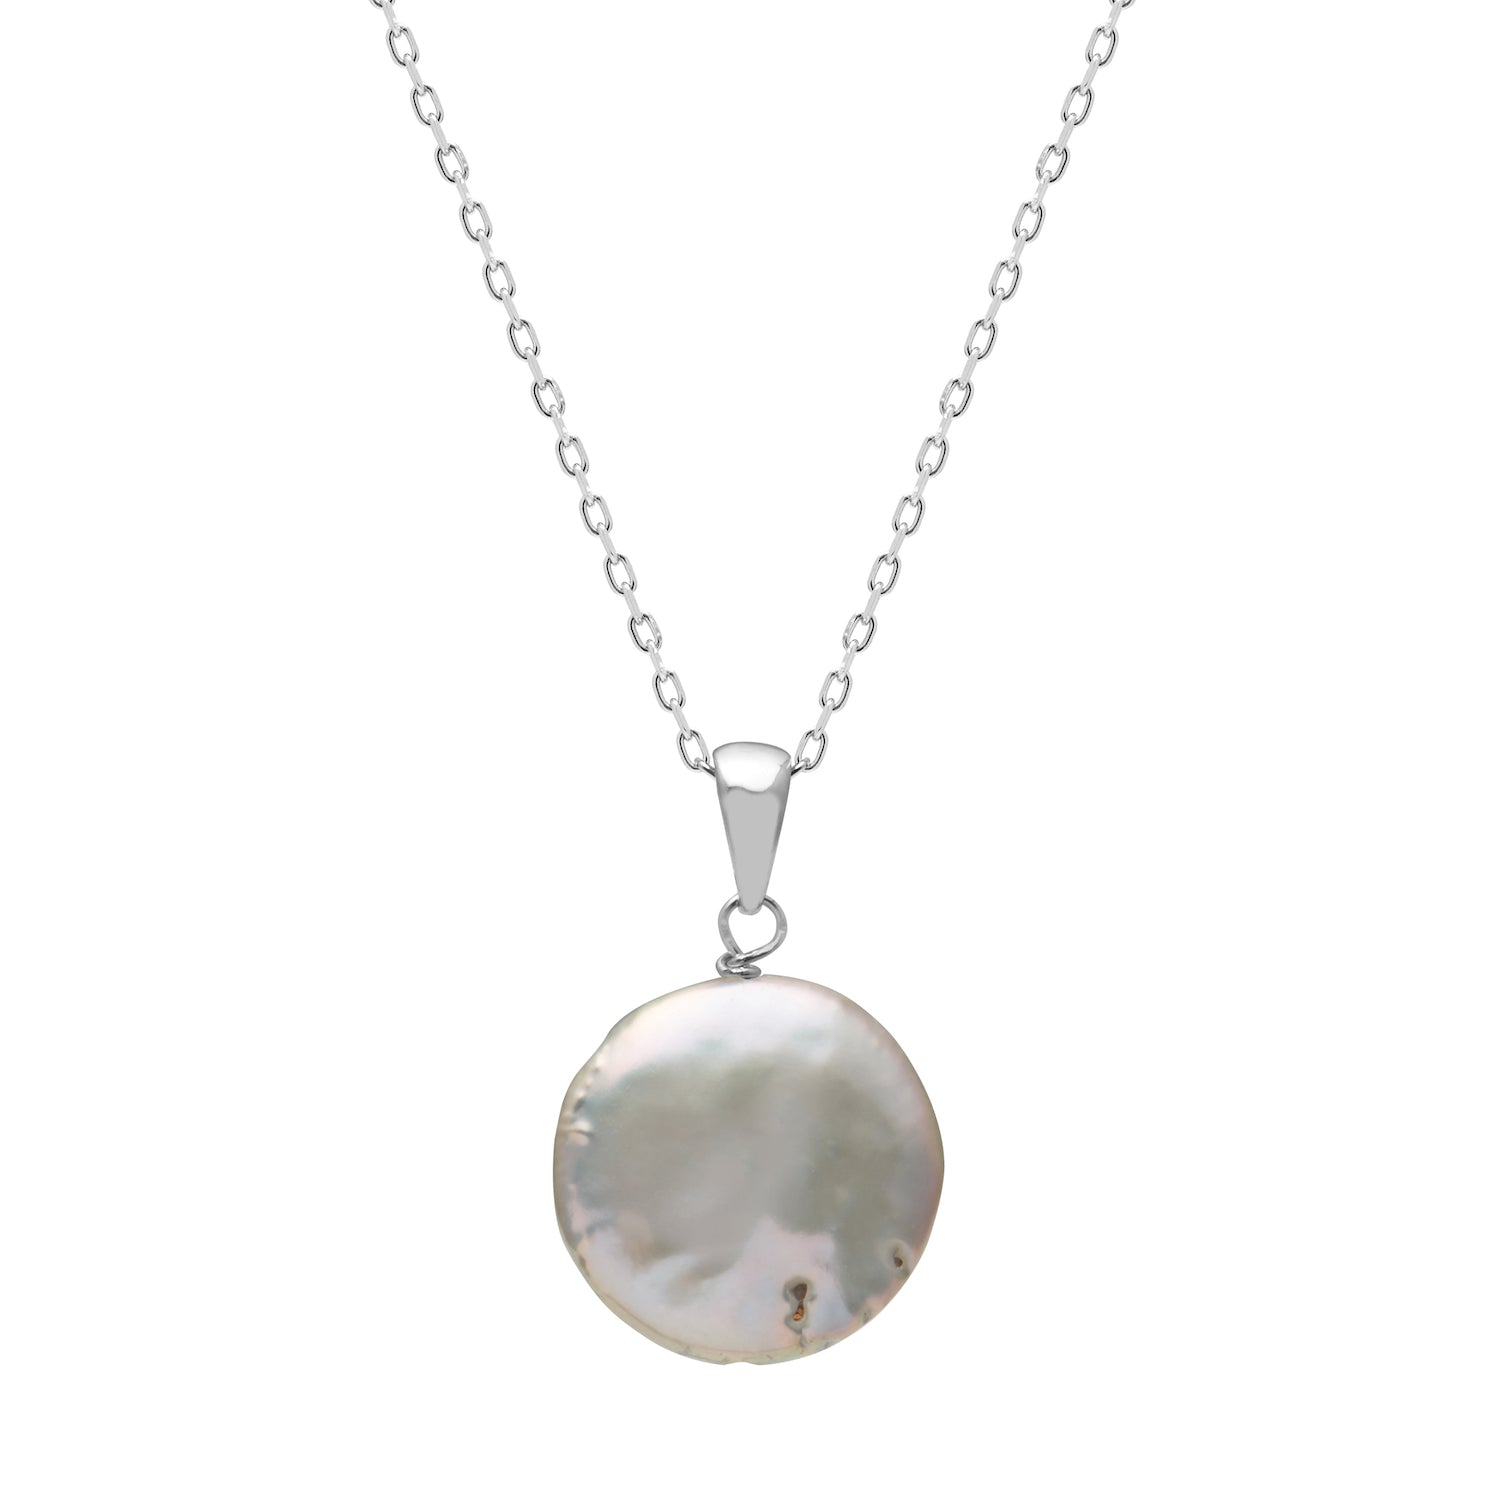 TKKP149 Kyoto Pearl Grey Freshwater Coin Pearl Pendant Necklace in 925 Silver